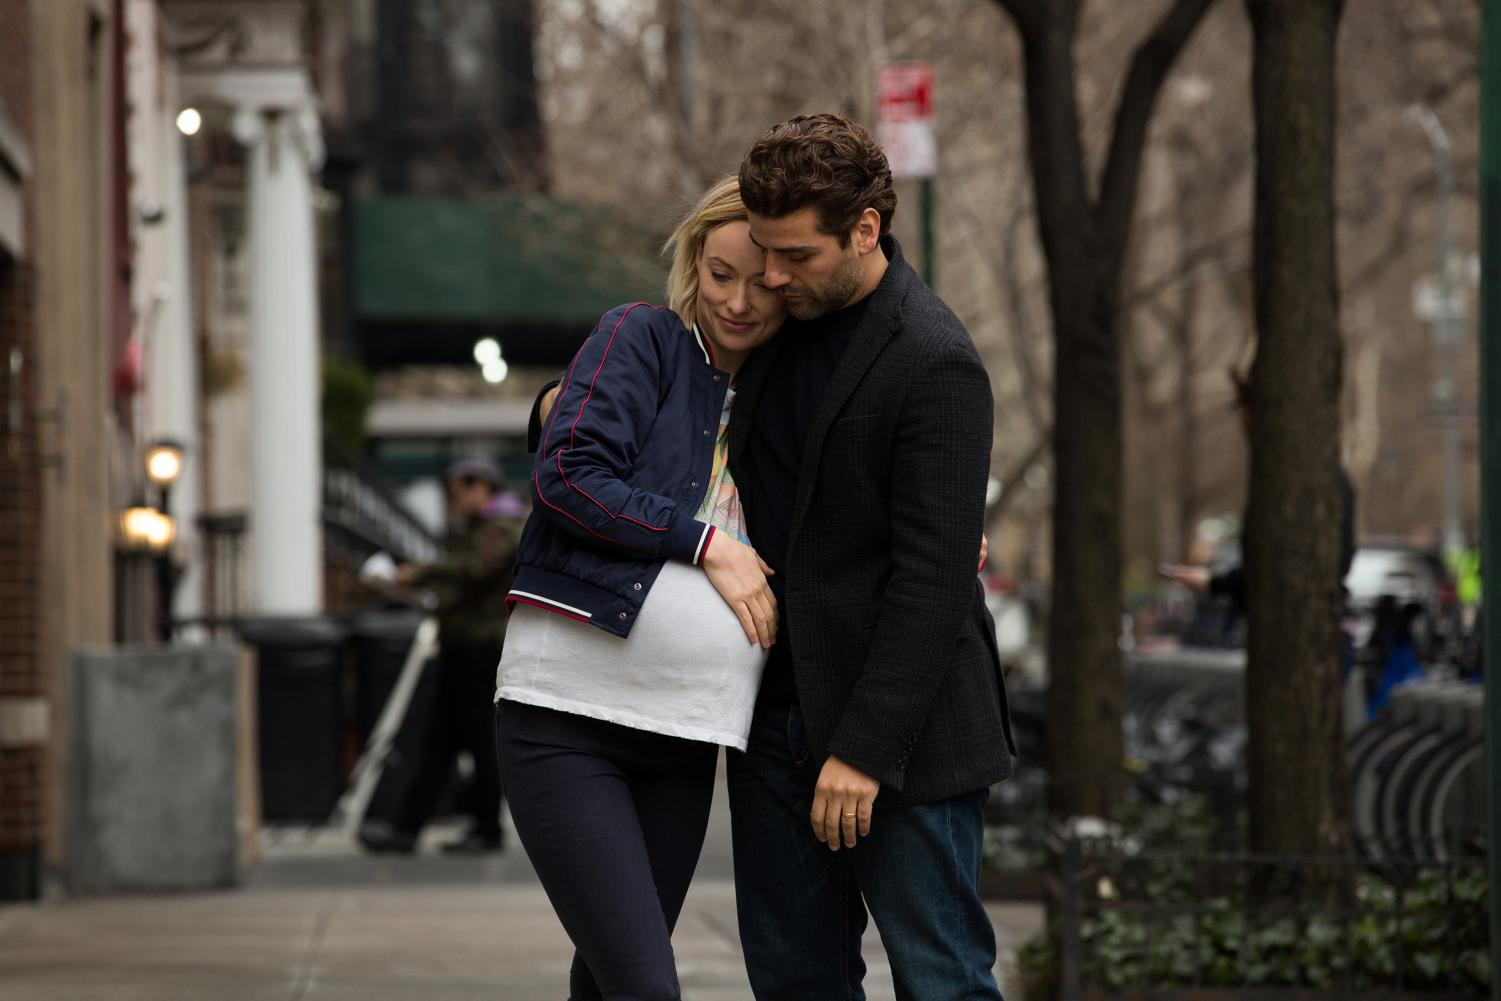 Happy couple Will (Oscar Isaac) and Abby (Olivia Wilde) share a sweet embrace in the streets of New York City.